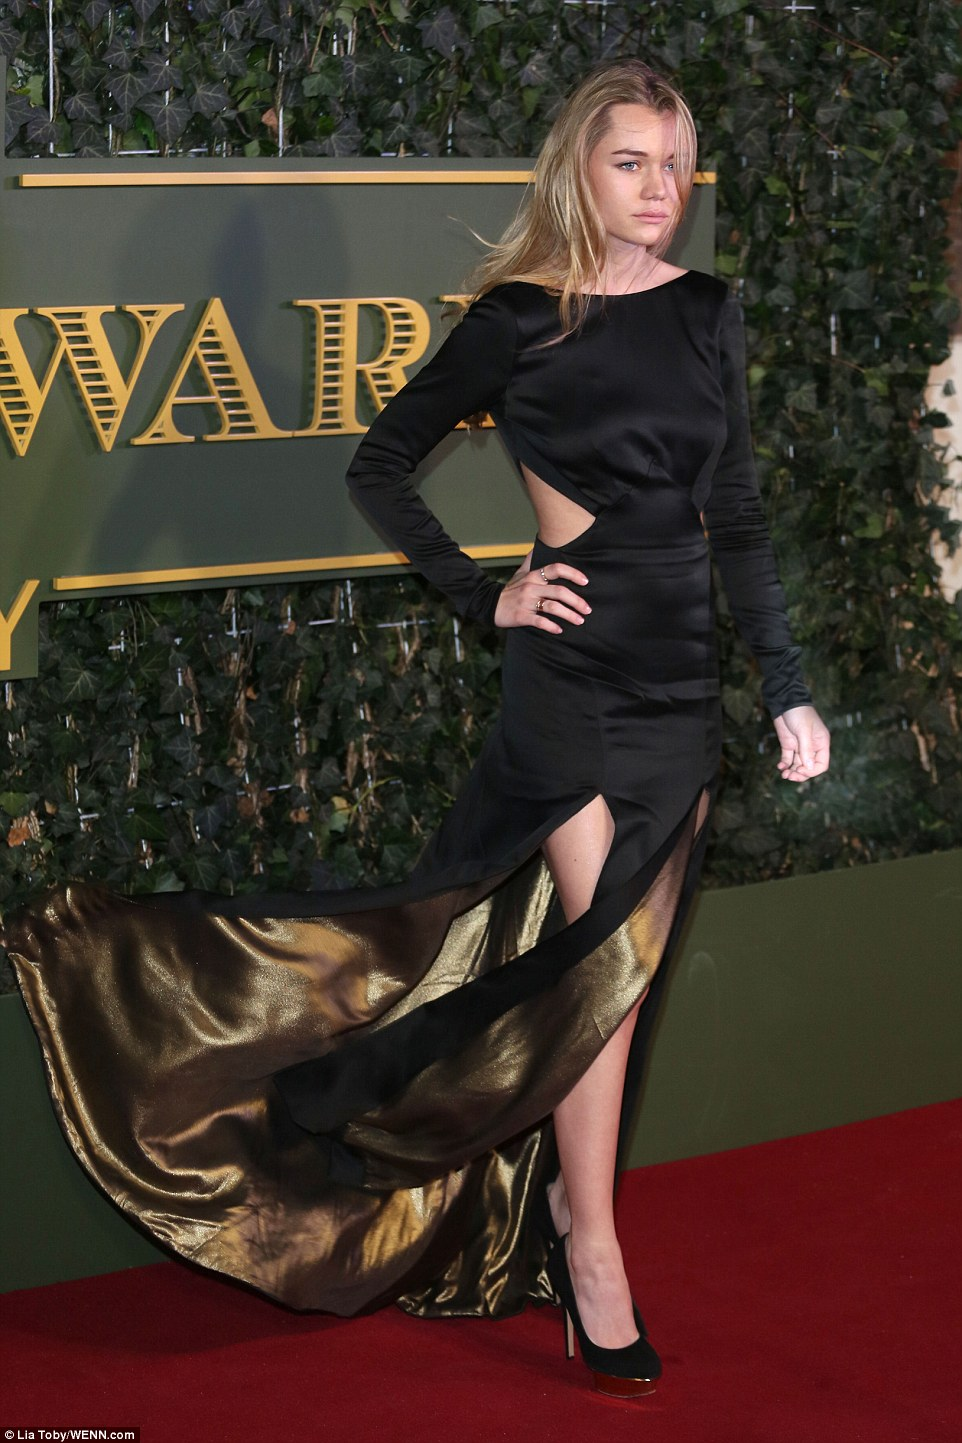 Suki Waterhouse's little sister, Immy, who also works as a model, wowed in a cut-out black and gold gown